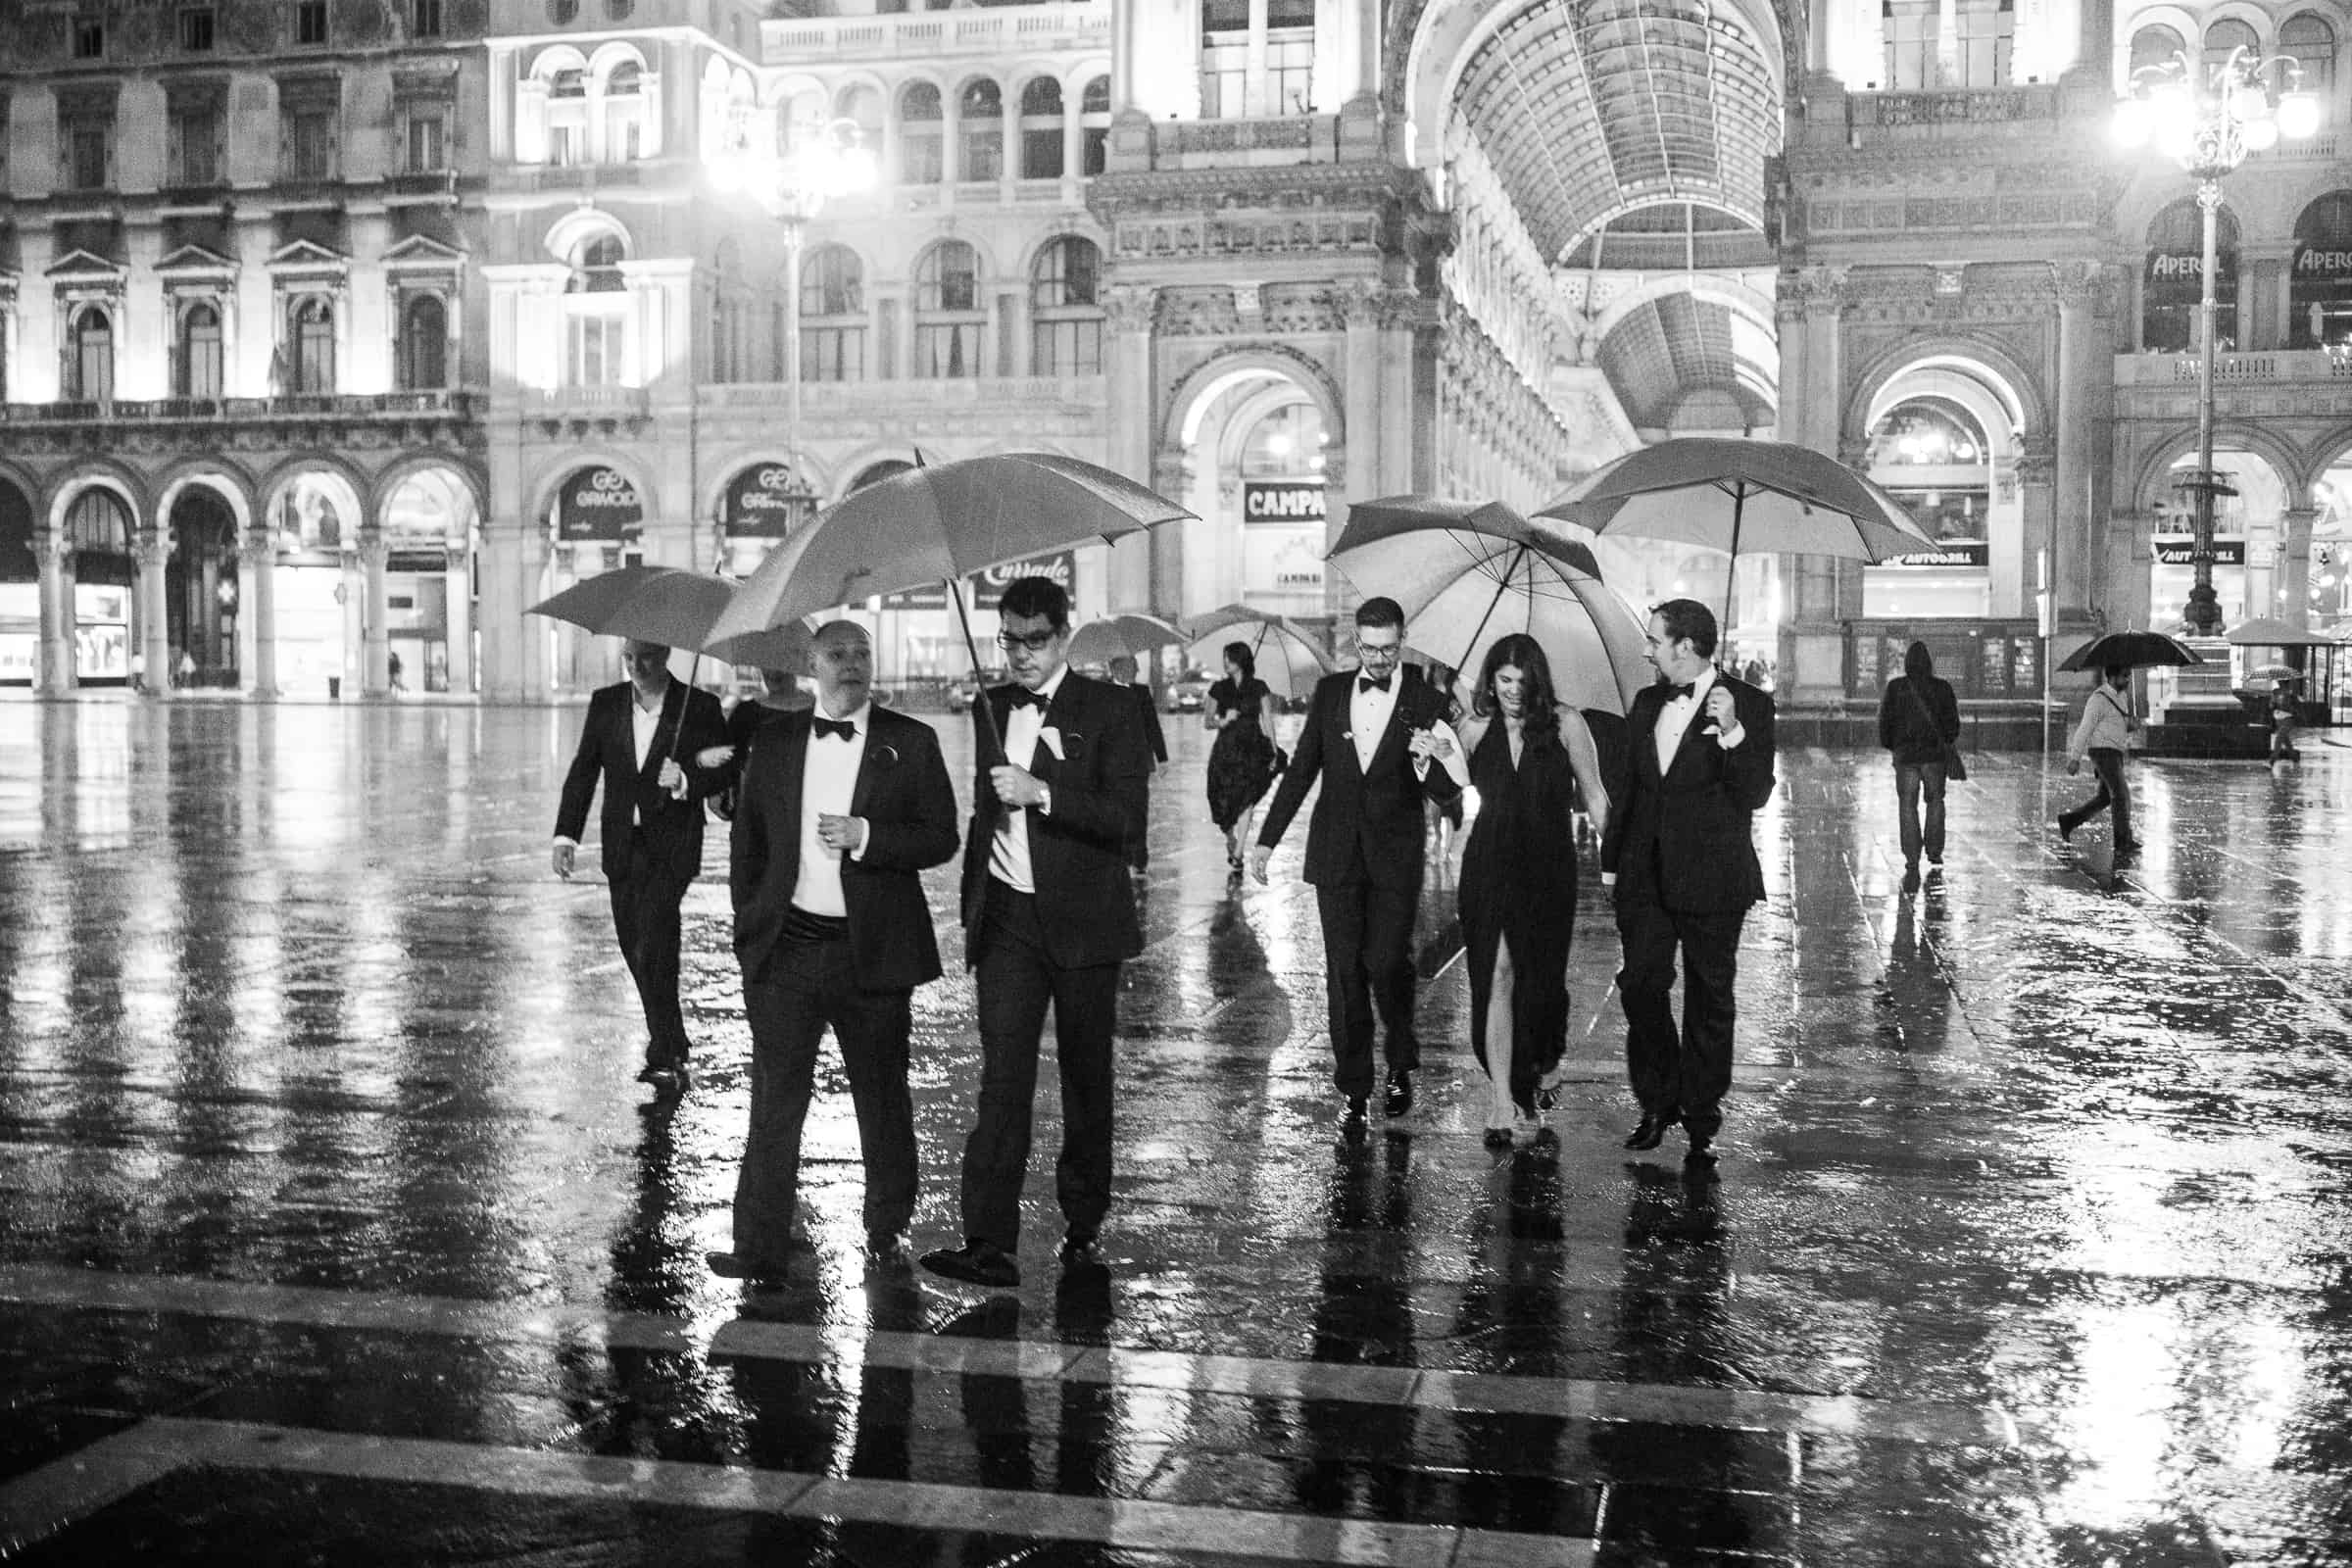 Guests at black tie gay destination wedding walking across Piazza del Duomo in Milan Italy